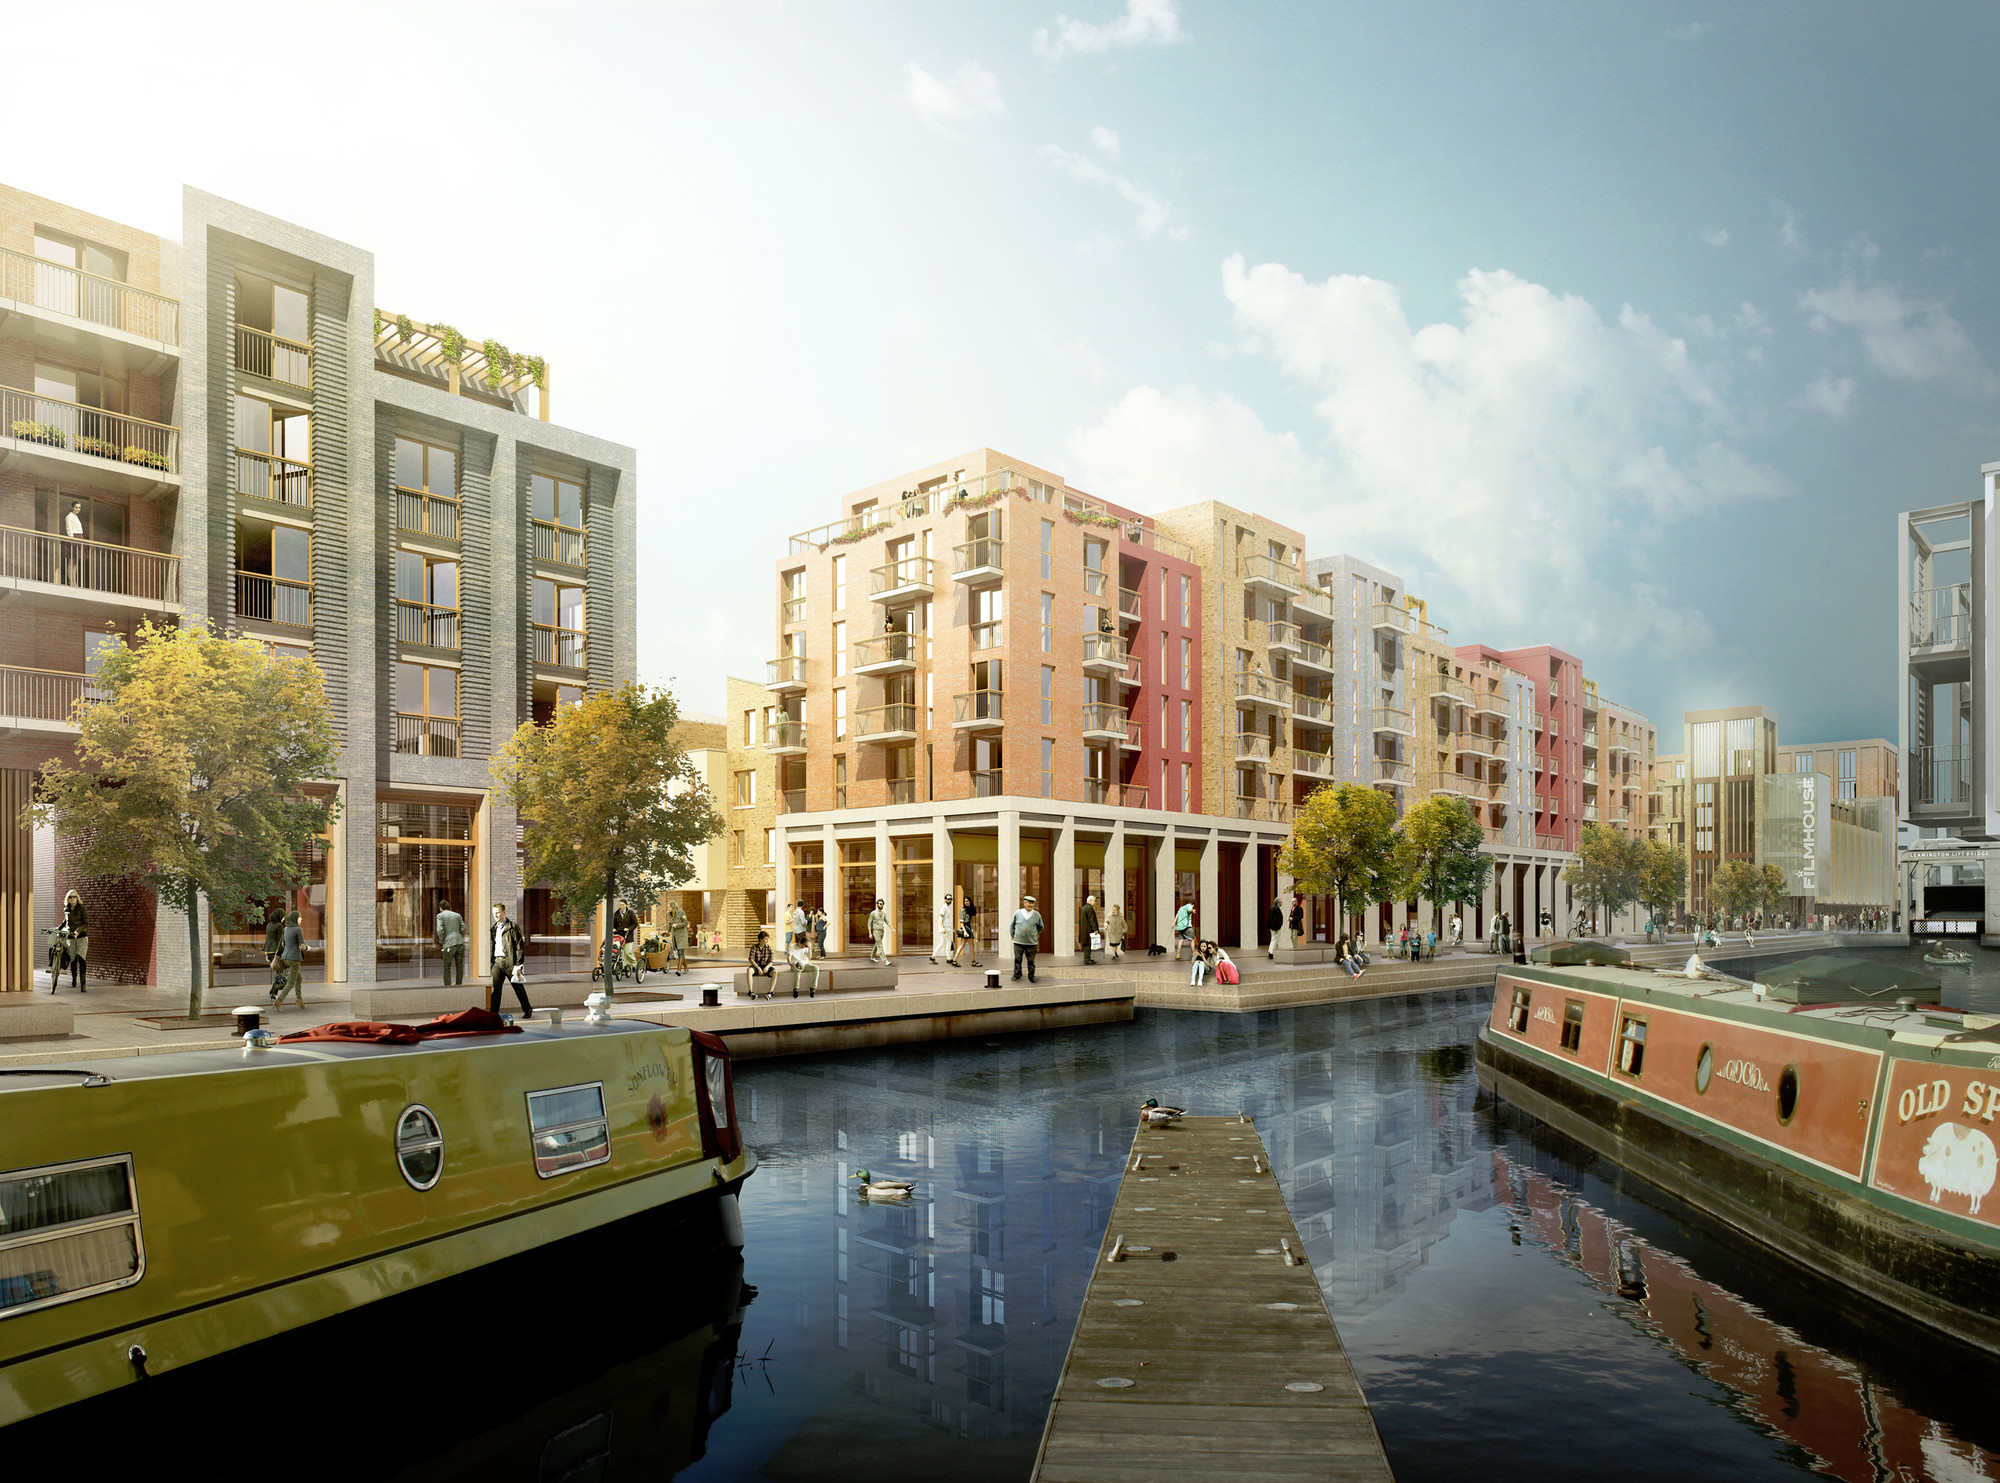 7N Architects Unveils Masterplan for Edinburgh's Fountainbridge Site, Courtesy of 7N Architects